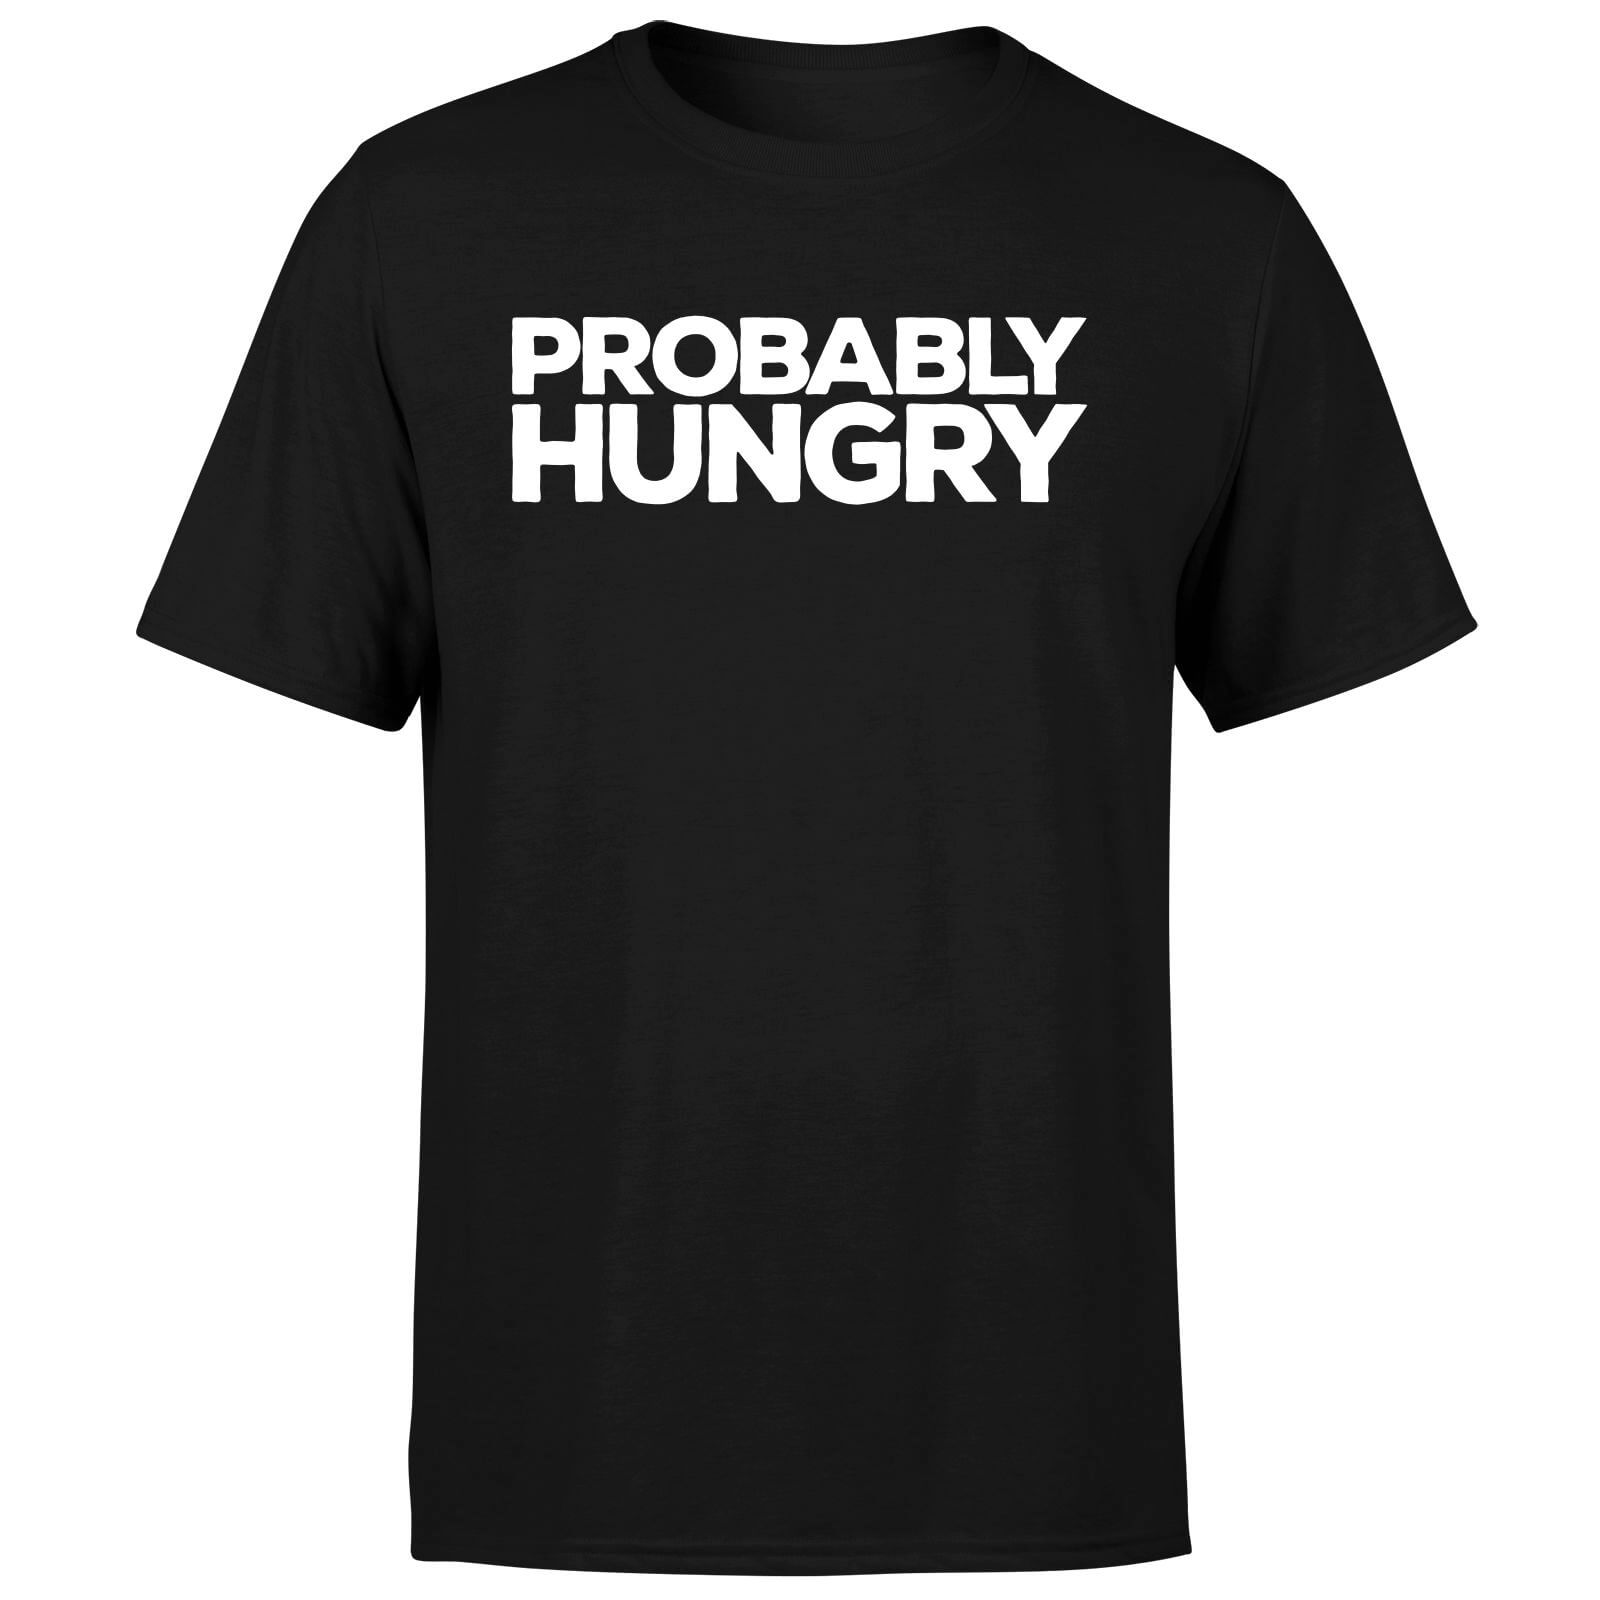 Probably Hungry T-Shirt - Black